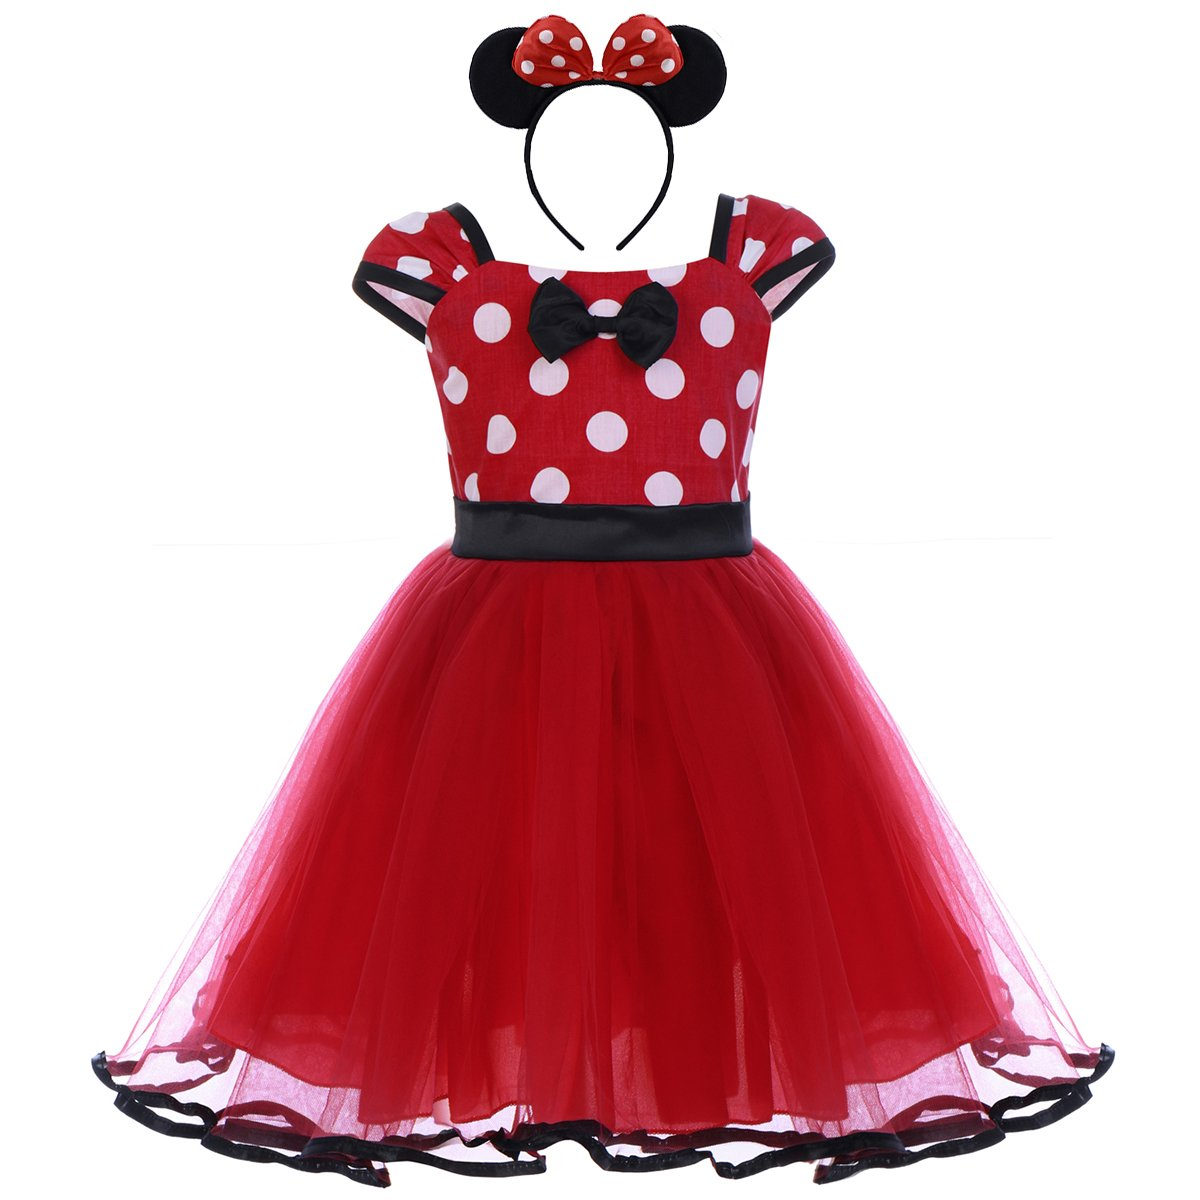 IBTOM CASTLE Toddlers Girls' Polka Dots Birthday Princess Leotard Party Cosplay Pageant Fancy Costume Tutu Dress up Mouse Ears Headband Black+Red(B) 2-3 Years